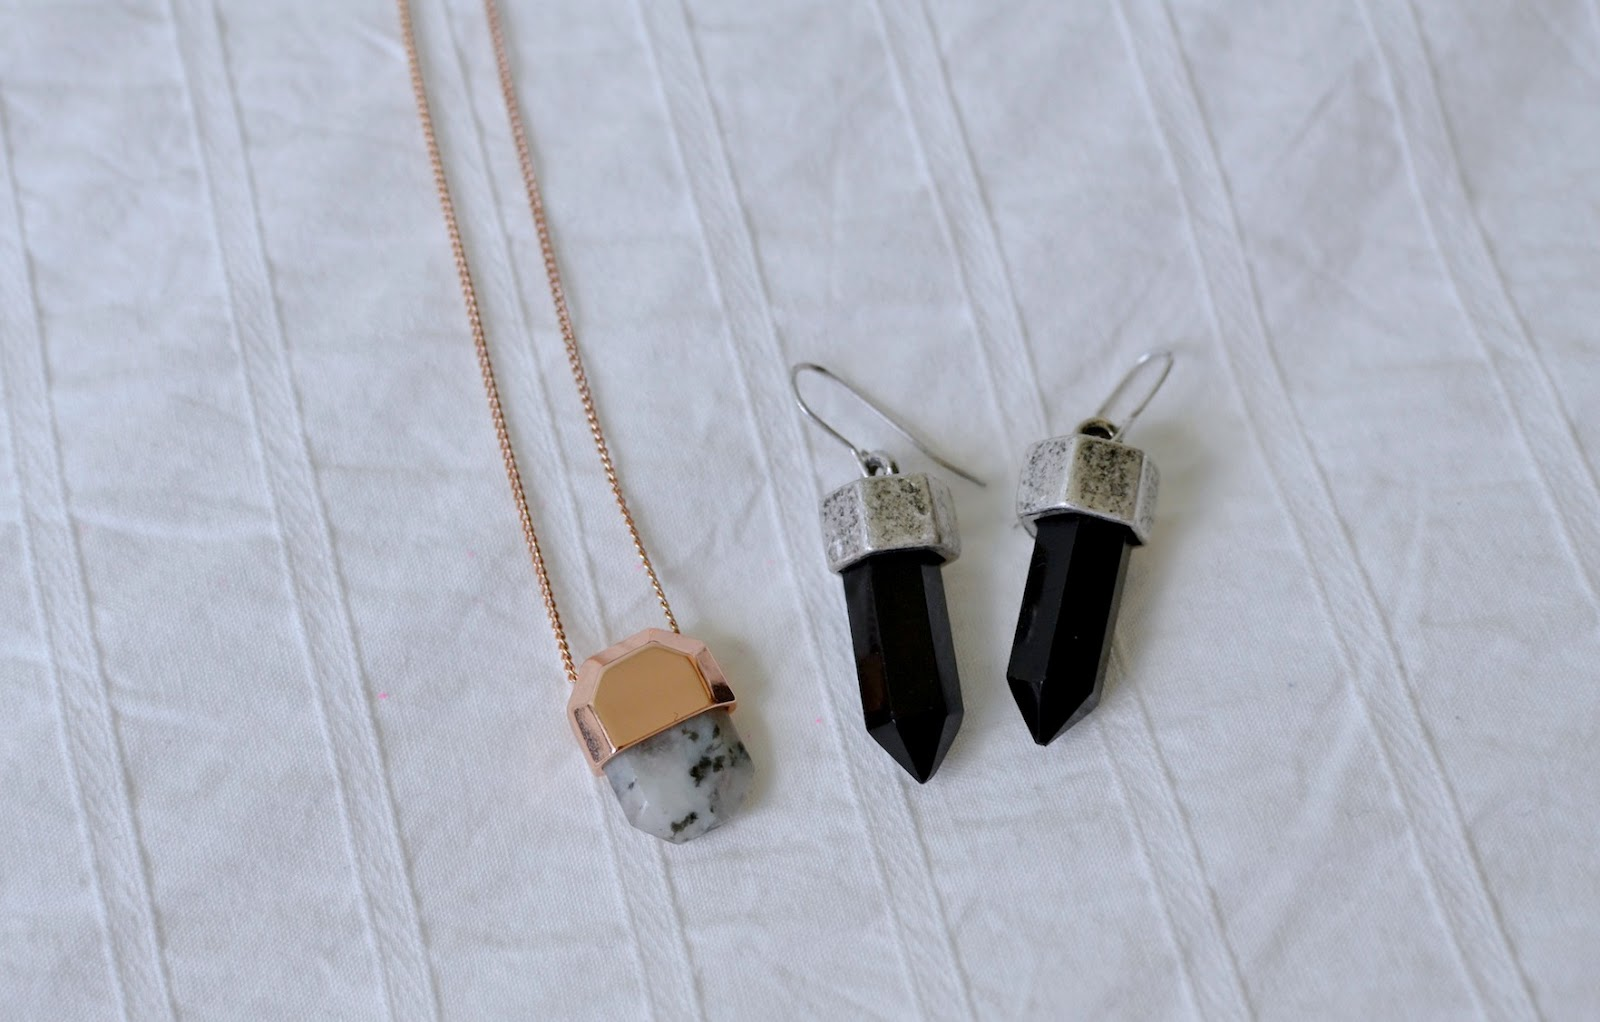 & Other Stories necklace